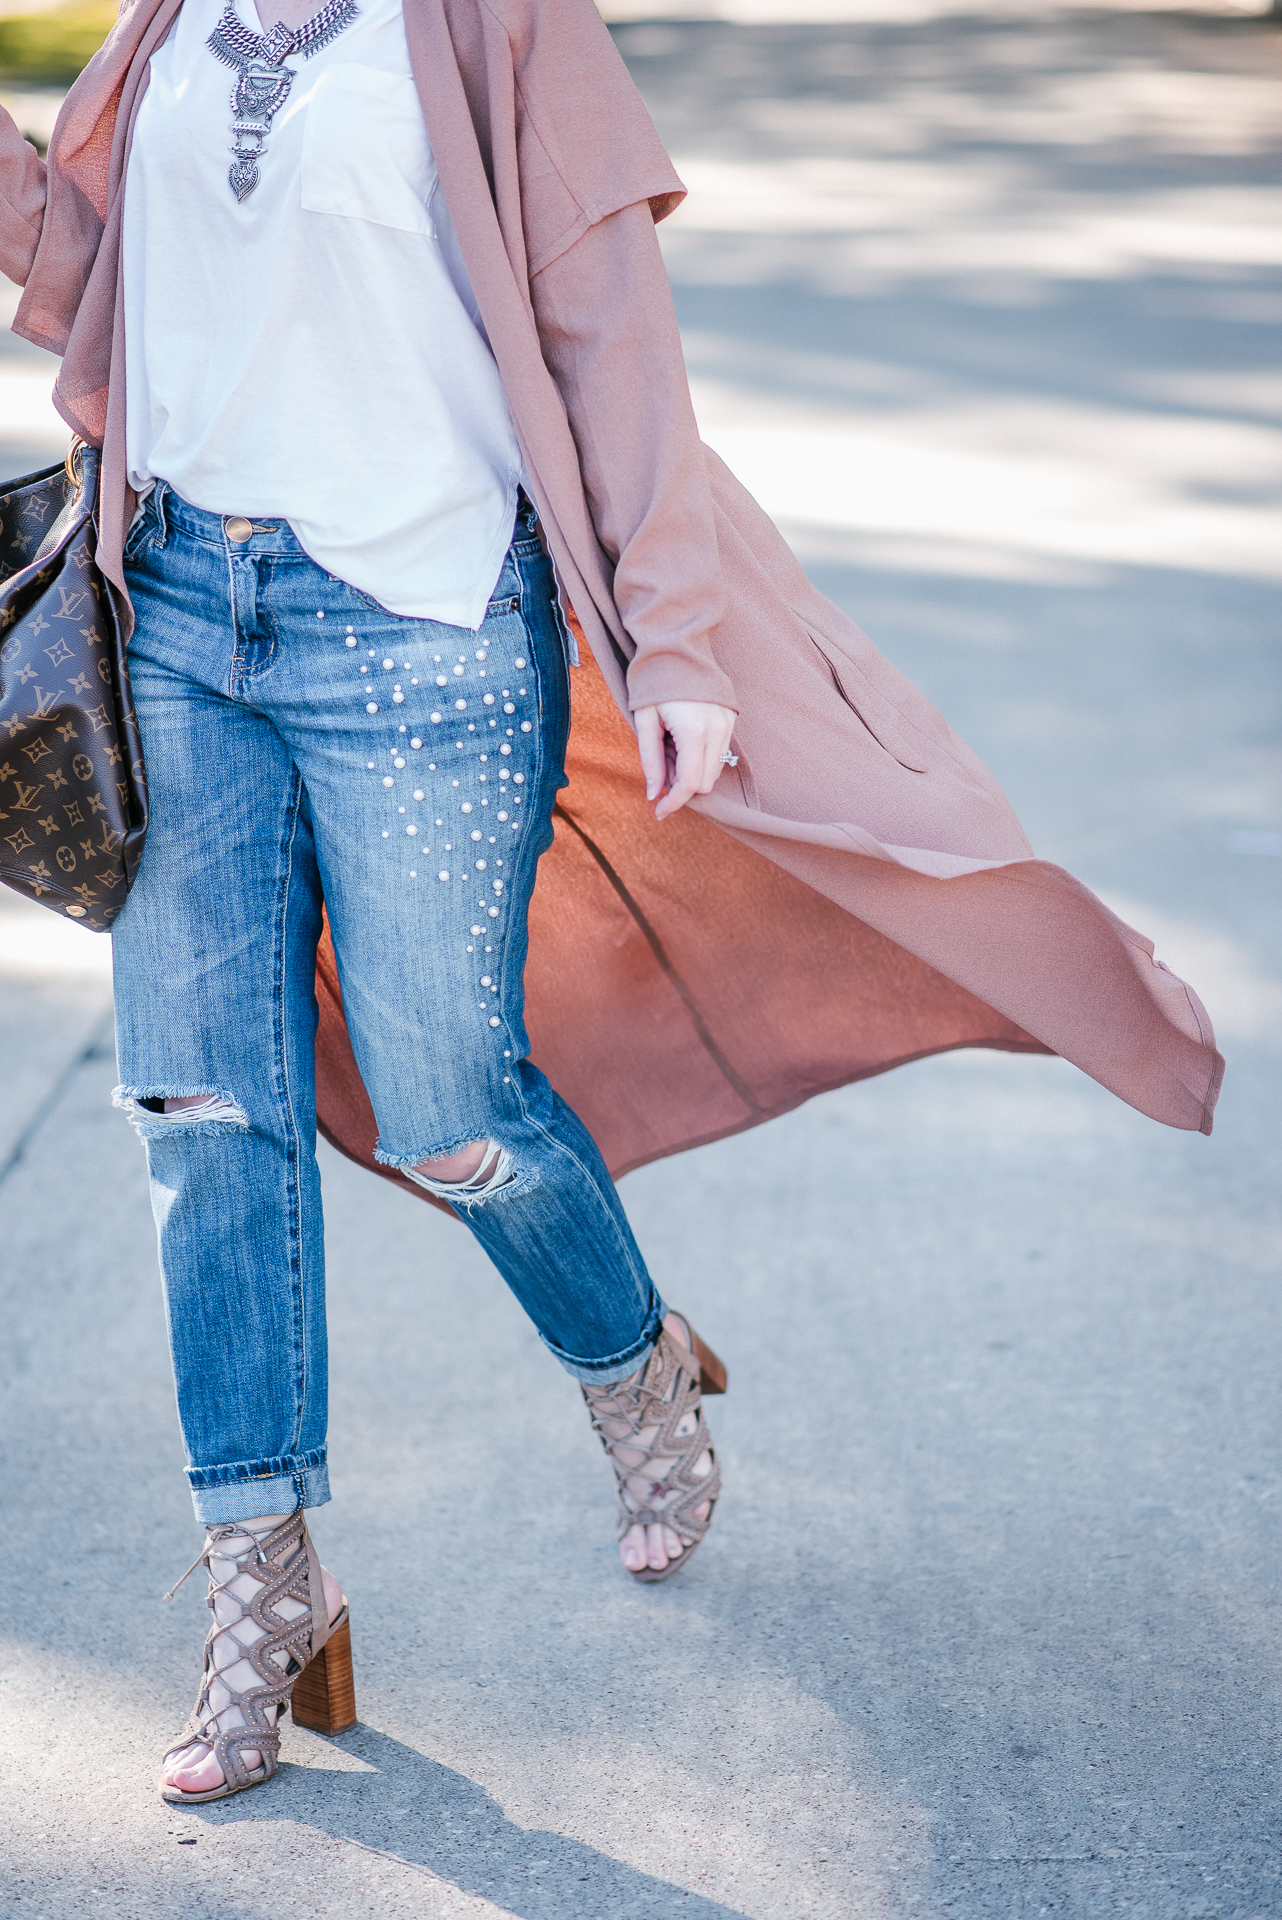 Fall Staples & Pearl Embellished Jeans by Houston fashion blogger Gracefully Sassy